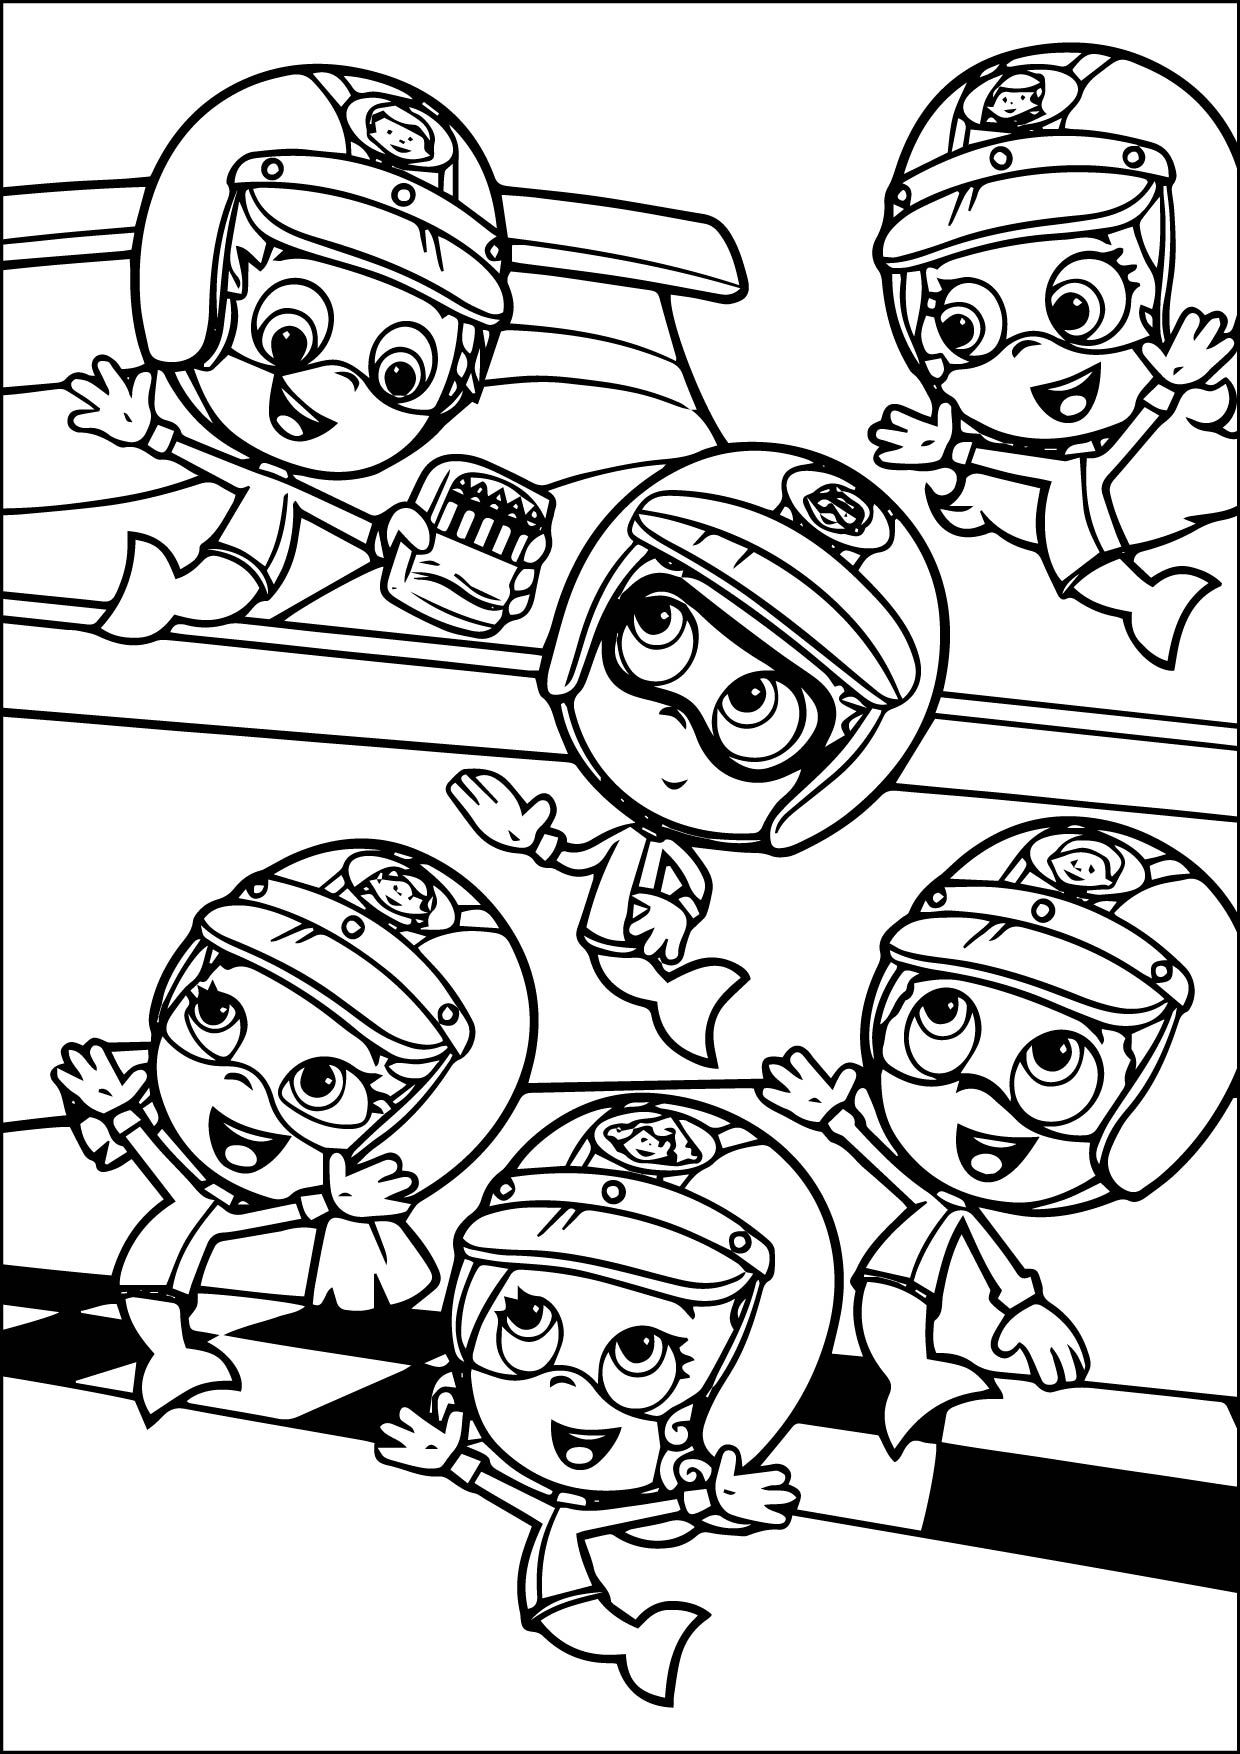 awesome coloring page 10-10-2015_135329-01 | Bubble ...